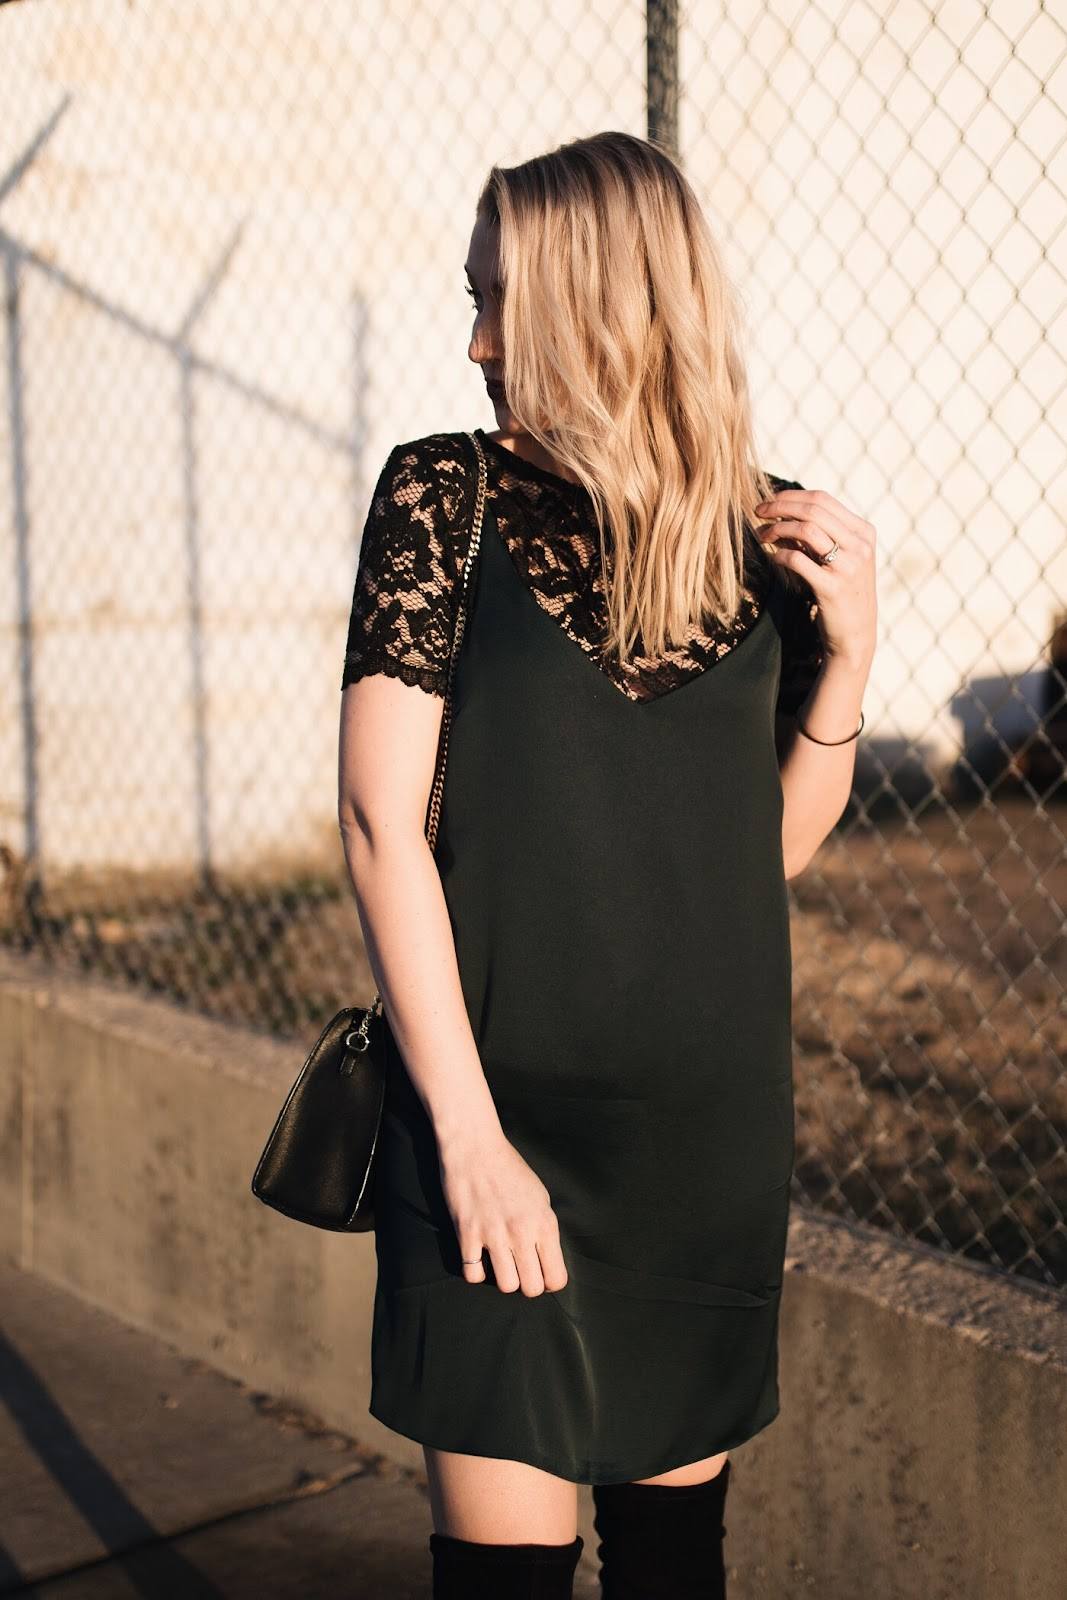 hunter green slip dress over a lace top